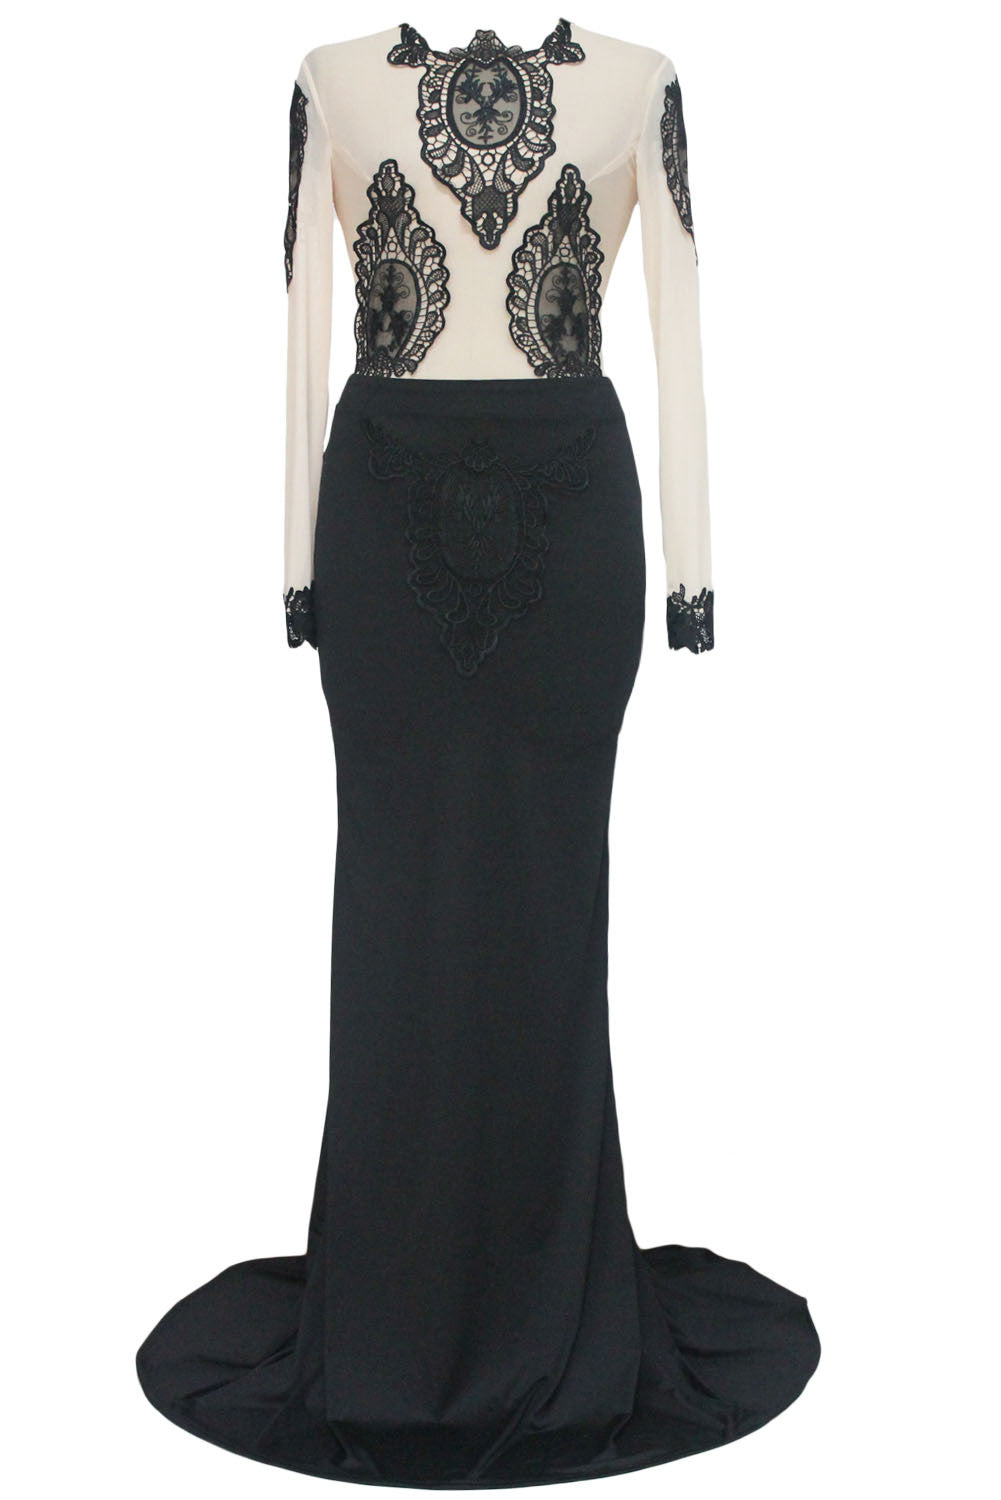 Marvelous Floral Lace Embroidery Tattoo Fishtail Party Gown